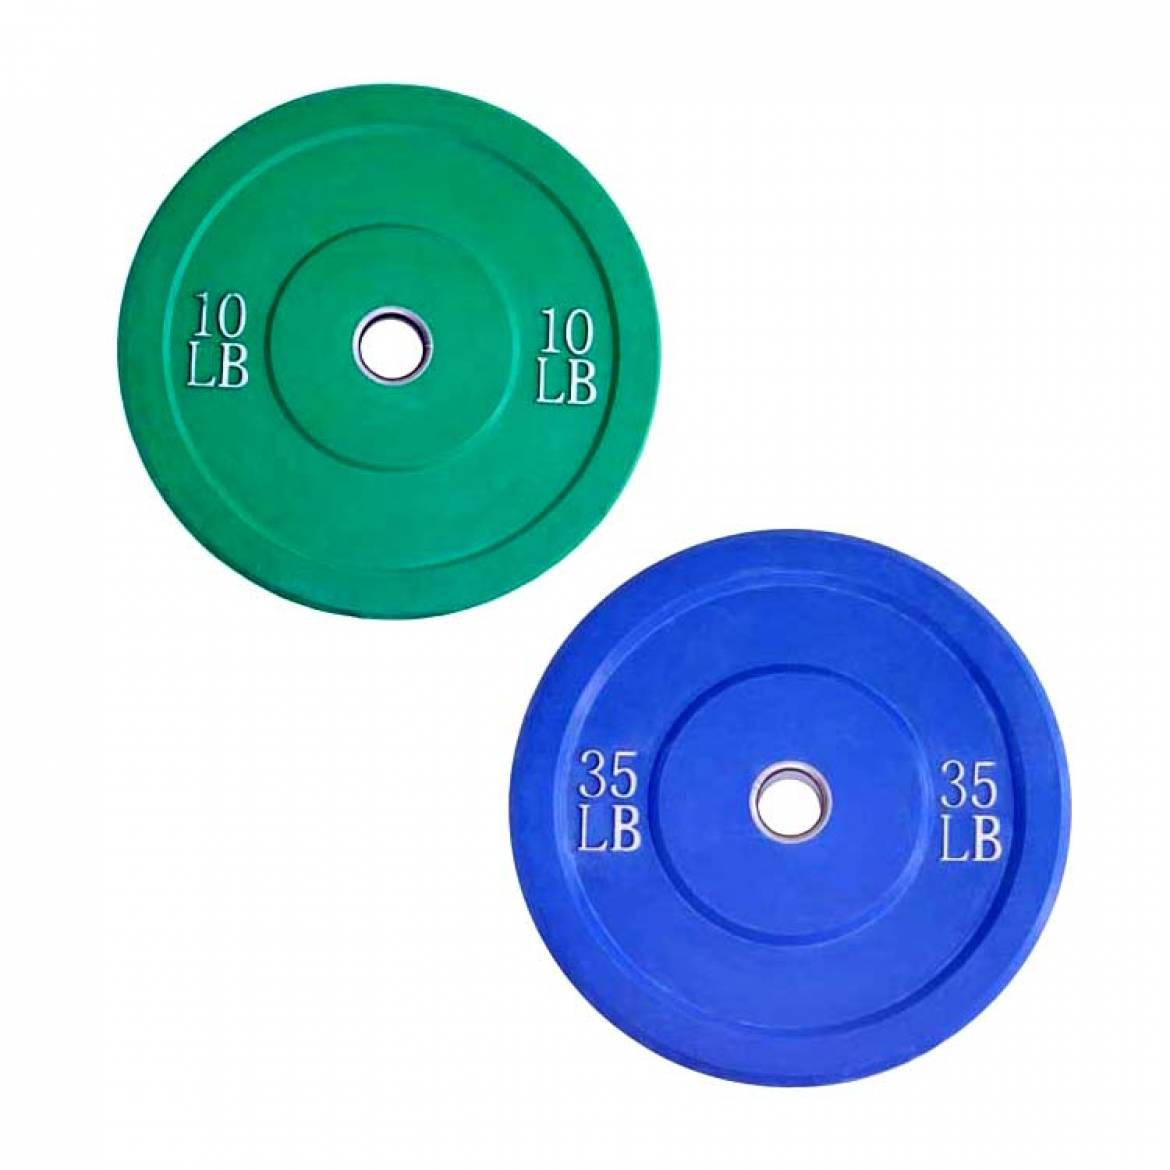 2″ Color Solid Rubber Bumper Plates (No Logo)